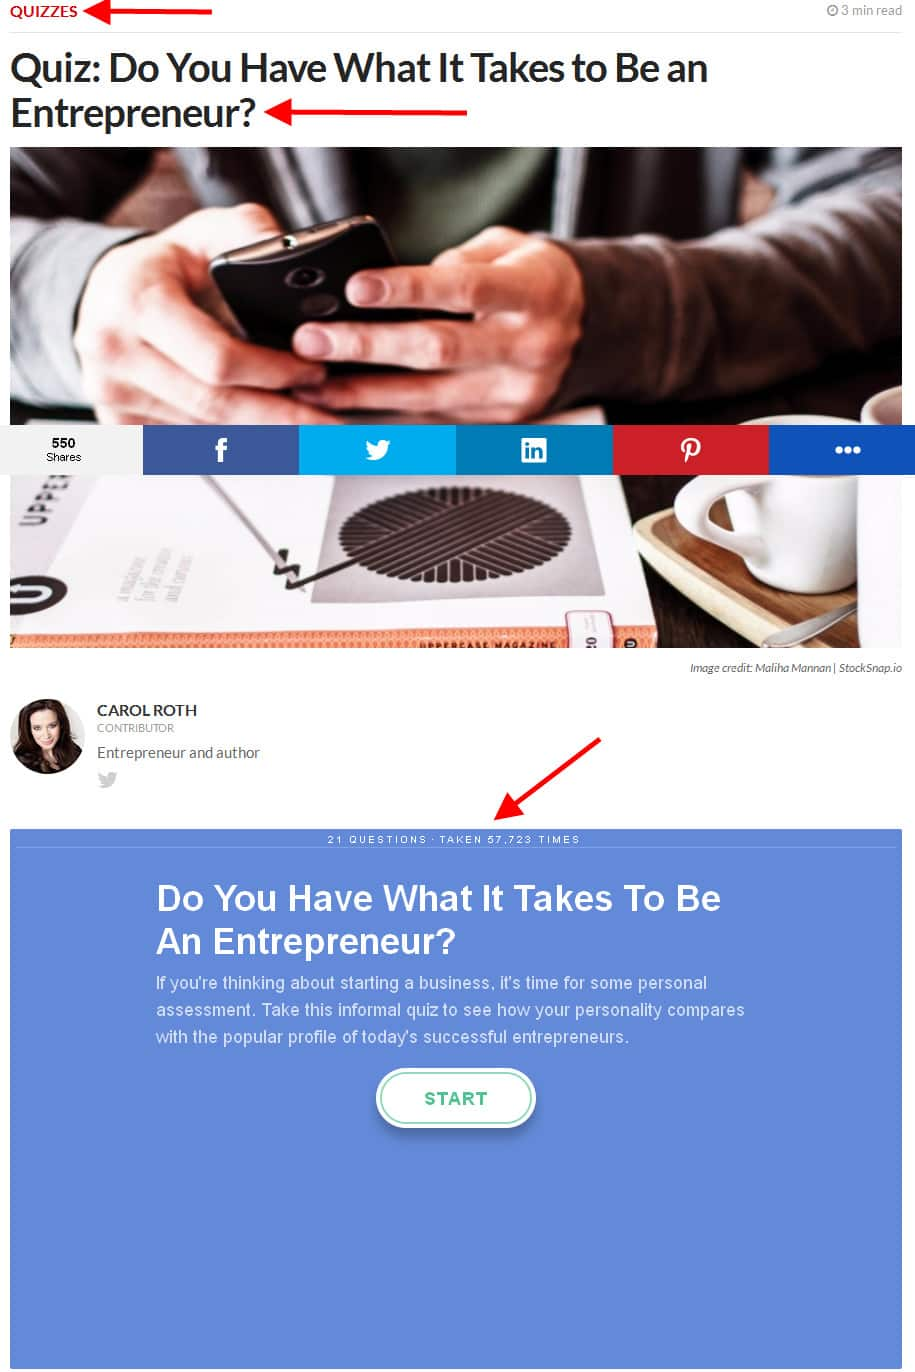 do you have what it takes to be an entrepreneur quiz